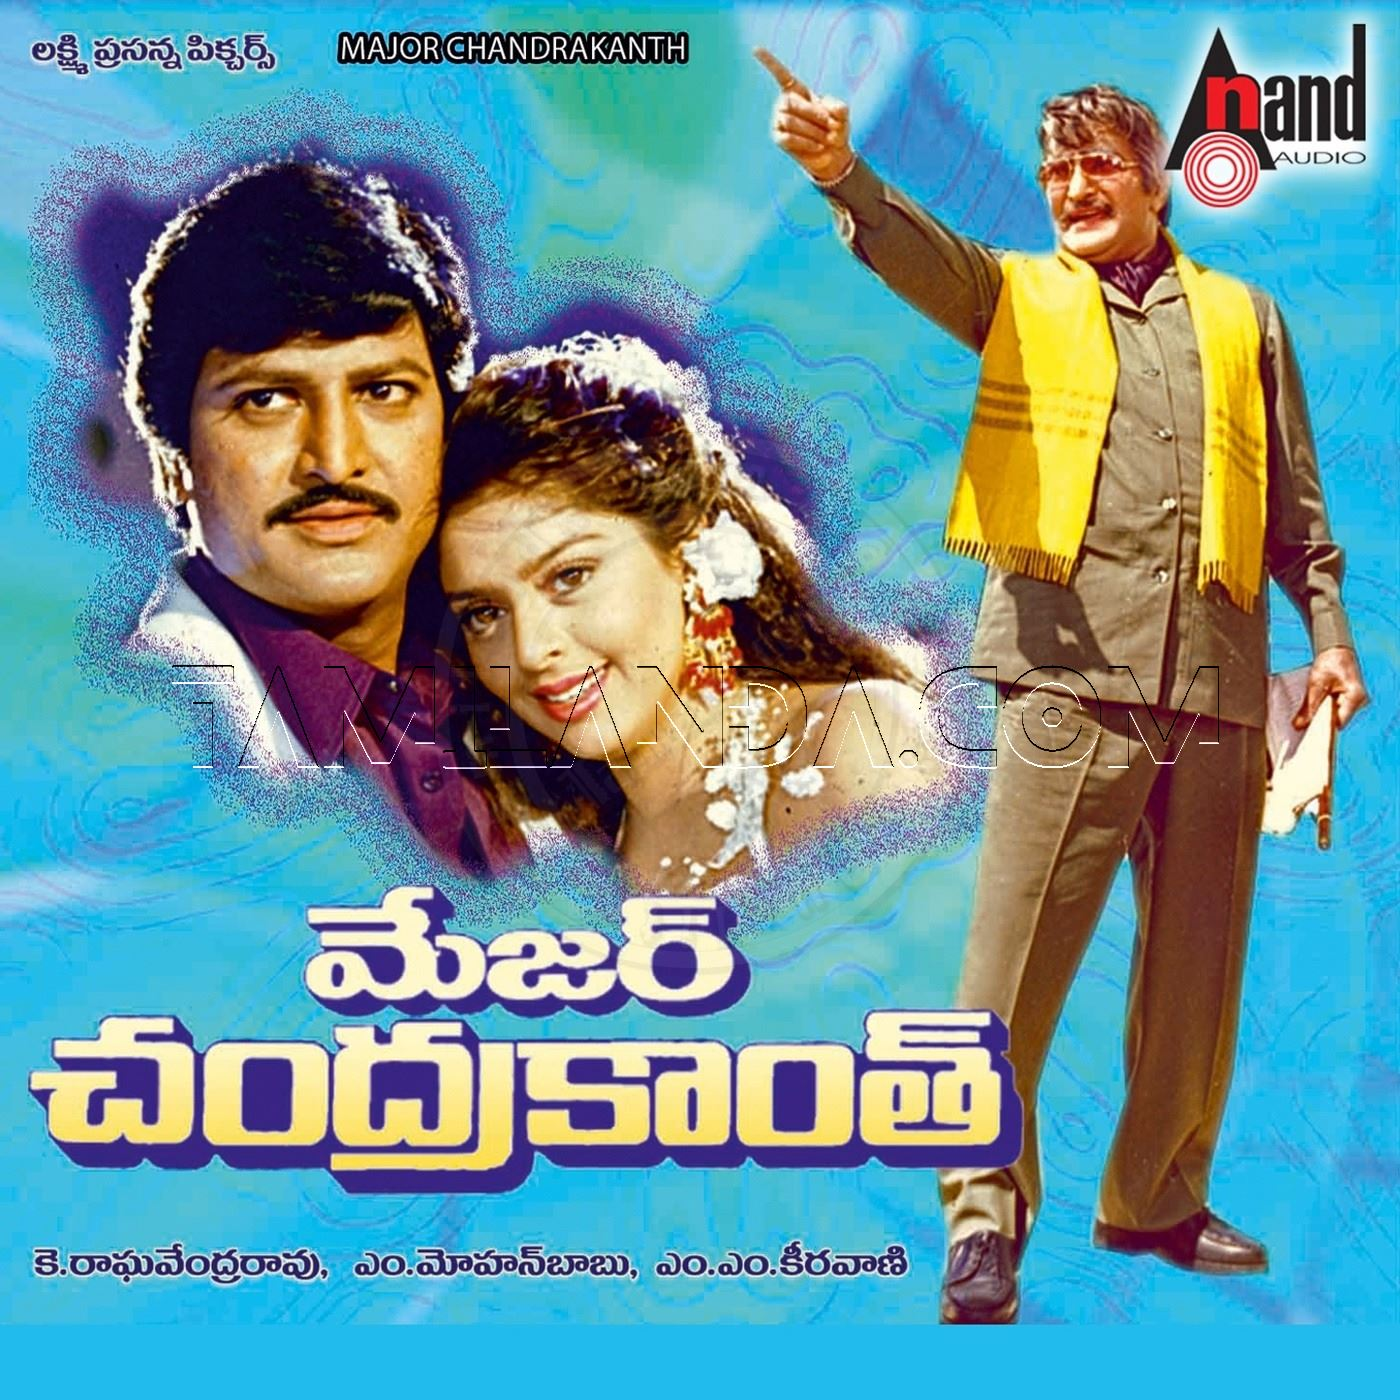 Major Chandrakanth FLAC/WAV Songs